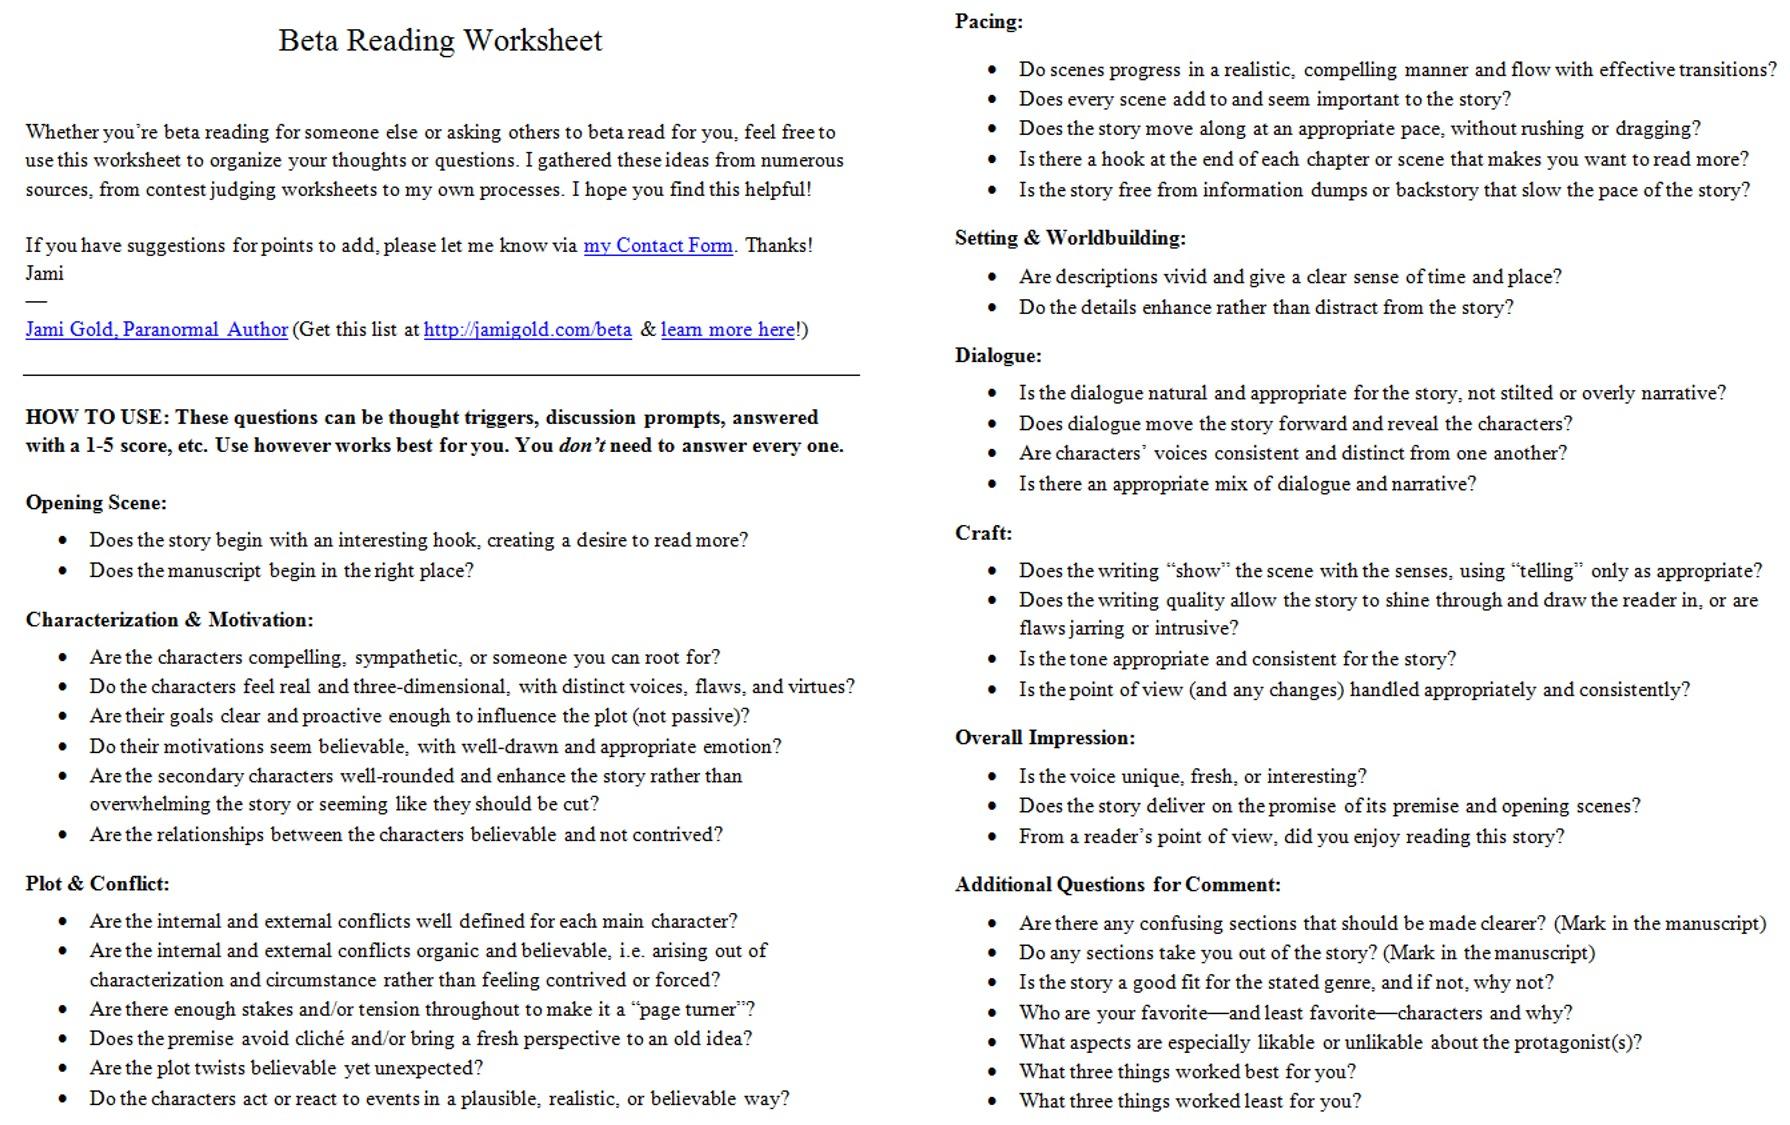 Aldiablosus  Unusual Worksheets For Writers  Jami Gold Paranormal Author With Goodlooking Screen Shot Of The Twopage Beta Reading Worksheet With Easy On The Eye Wizard Of Oz Worksheets Also Independent And Subordinate Clauses Worksheet In Addition Parallel Perpendicular And Intersecting Lines Worksheet And The Human Body An Orientation Worksheet Answers As Well As Dependent Student Verification Worksheet Additionally Geography Worksheets High School From Jamigoldcom With Aldiablosus  Goodlooking Worksheets For Writers  Jami Gold Paranormal Author With Easy On The Eye Screen Shot Of The Twopage Beta Reading Worksheet And Unusual Wizard Of Oz Worksheets Also Independent And Subordinate Clauses Worksheet In Addition Parallel Perpendicular And Intersecting Lines Worksheet From Jamigoldcom